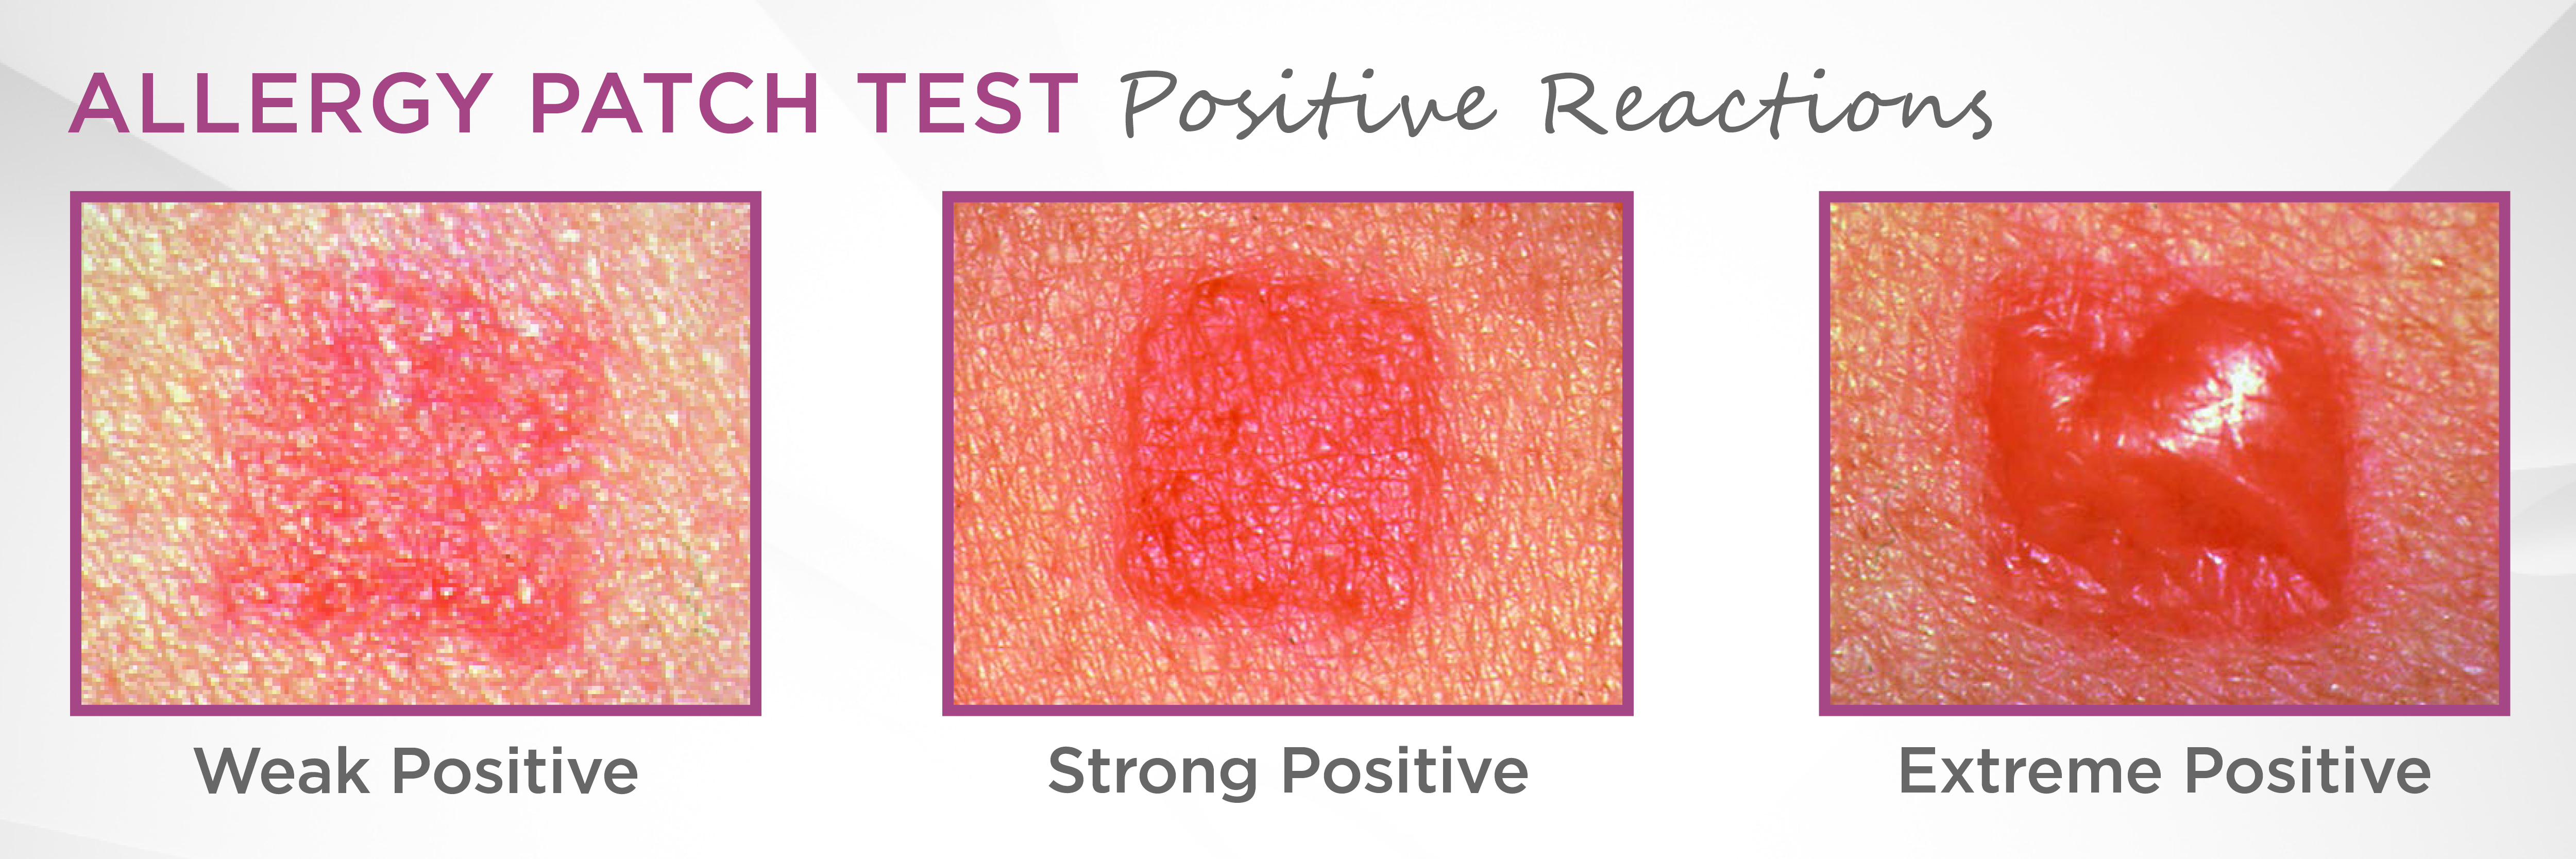 allergy patch test results.png